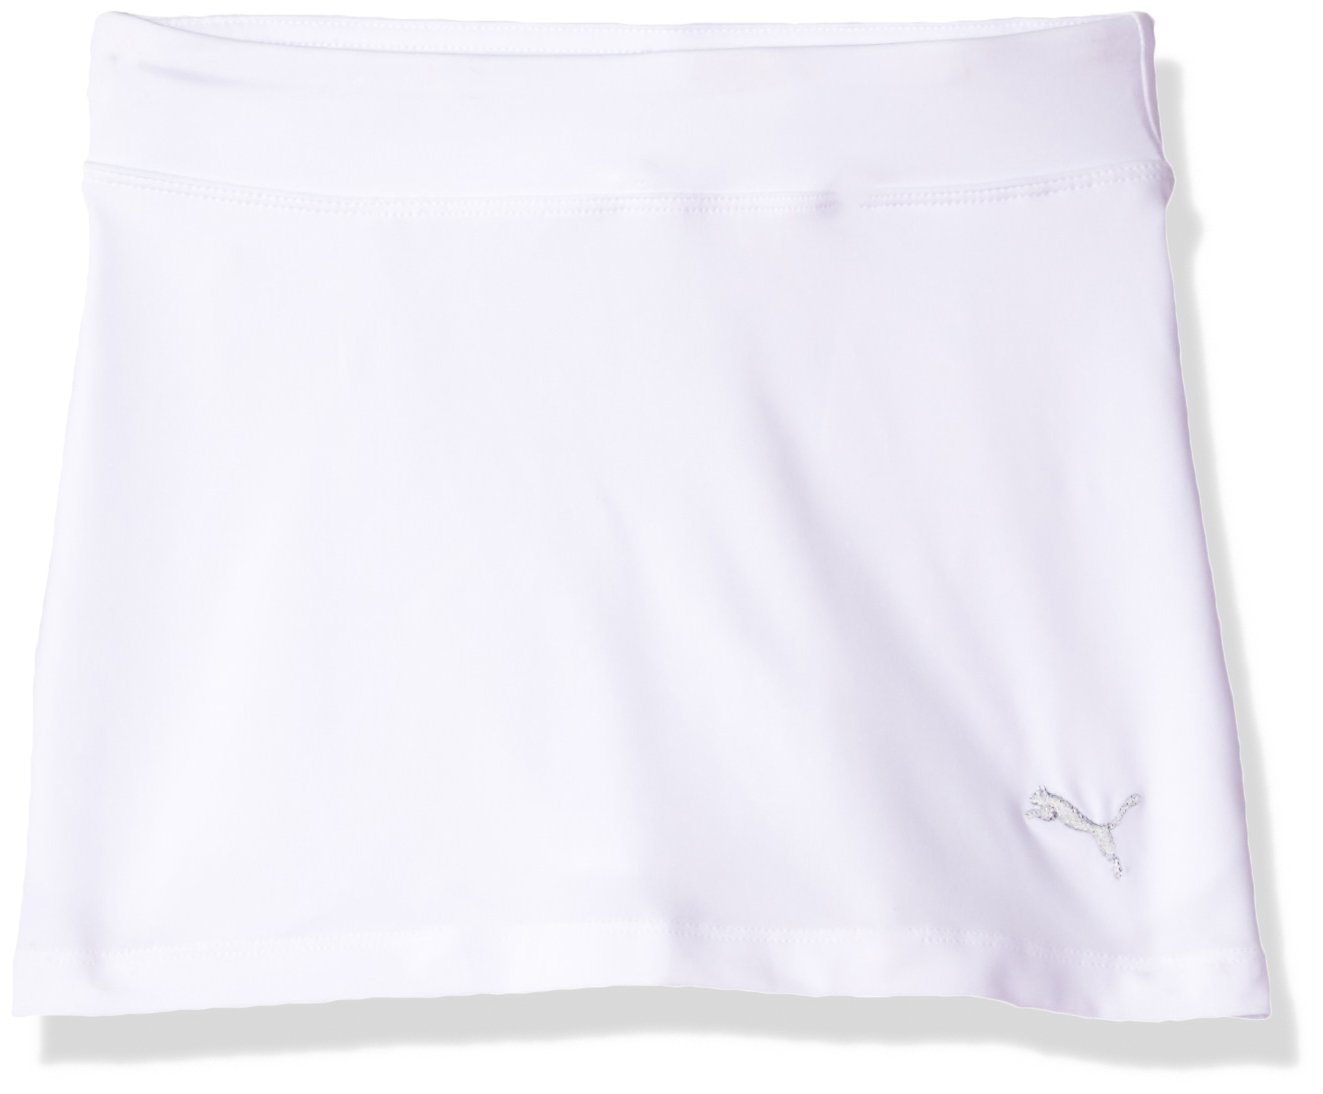 PUMA Golf 2017 Girl's Solid Knit Skirt, Bright White, Large by PUMA